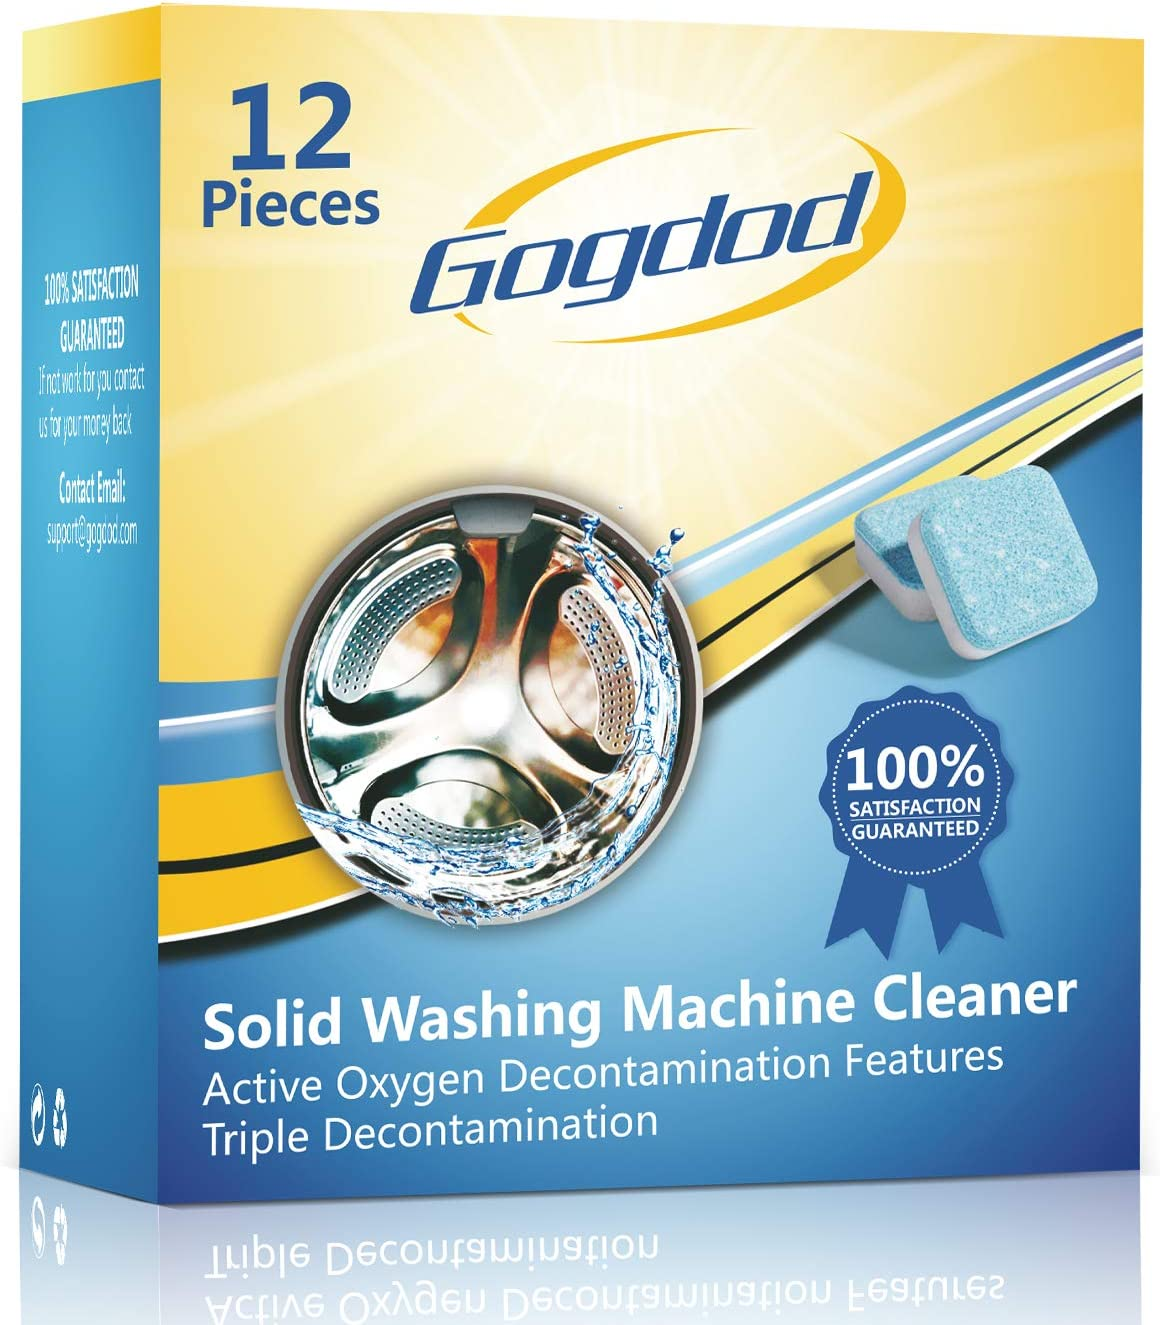 Gogdod Washing Machine Cleaner Effervescent Tablets, Solid Washer Deep Cleaning Tablet, Triple Decontamination Remover for Front and Top Load Washers, 12Pcs